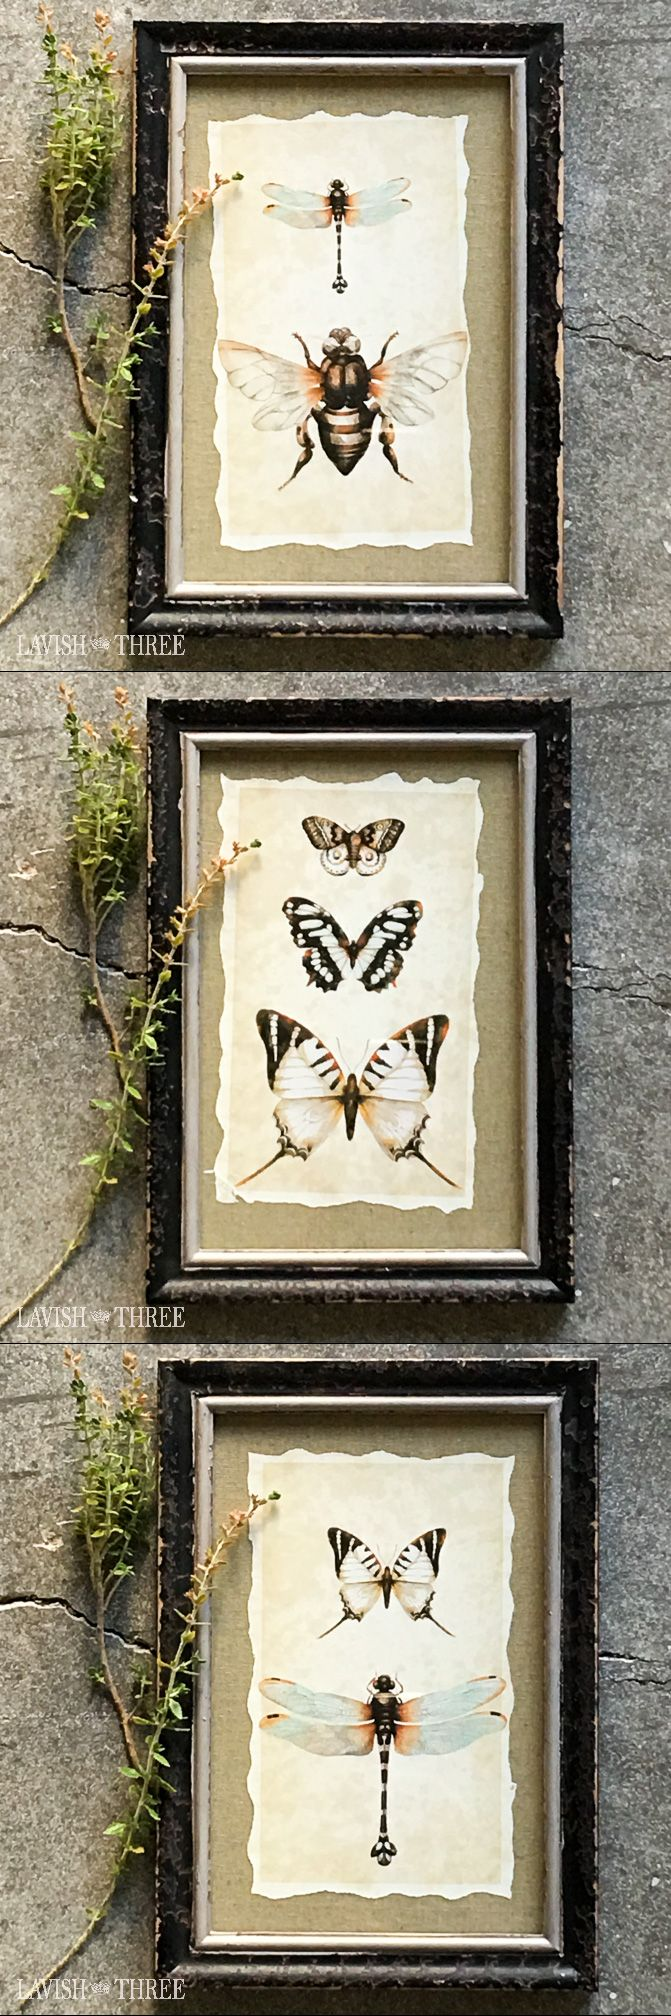 Vintage inspired framed insect prints. Available in Bumblebee Beauty, Muted Moths, Soft Black Butterfly or Delicate Dragonfly. Perfect wall art for the office, bedroom or living room.